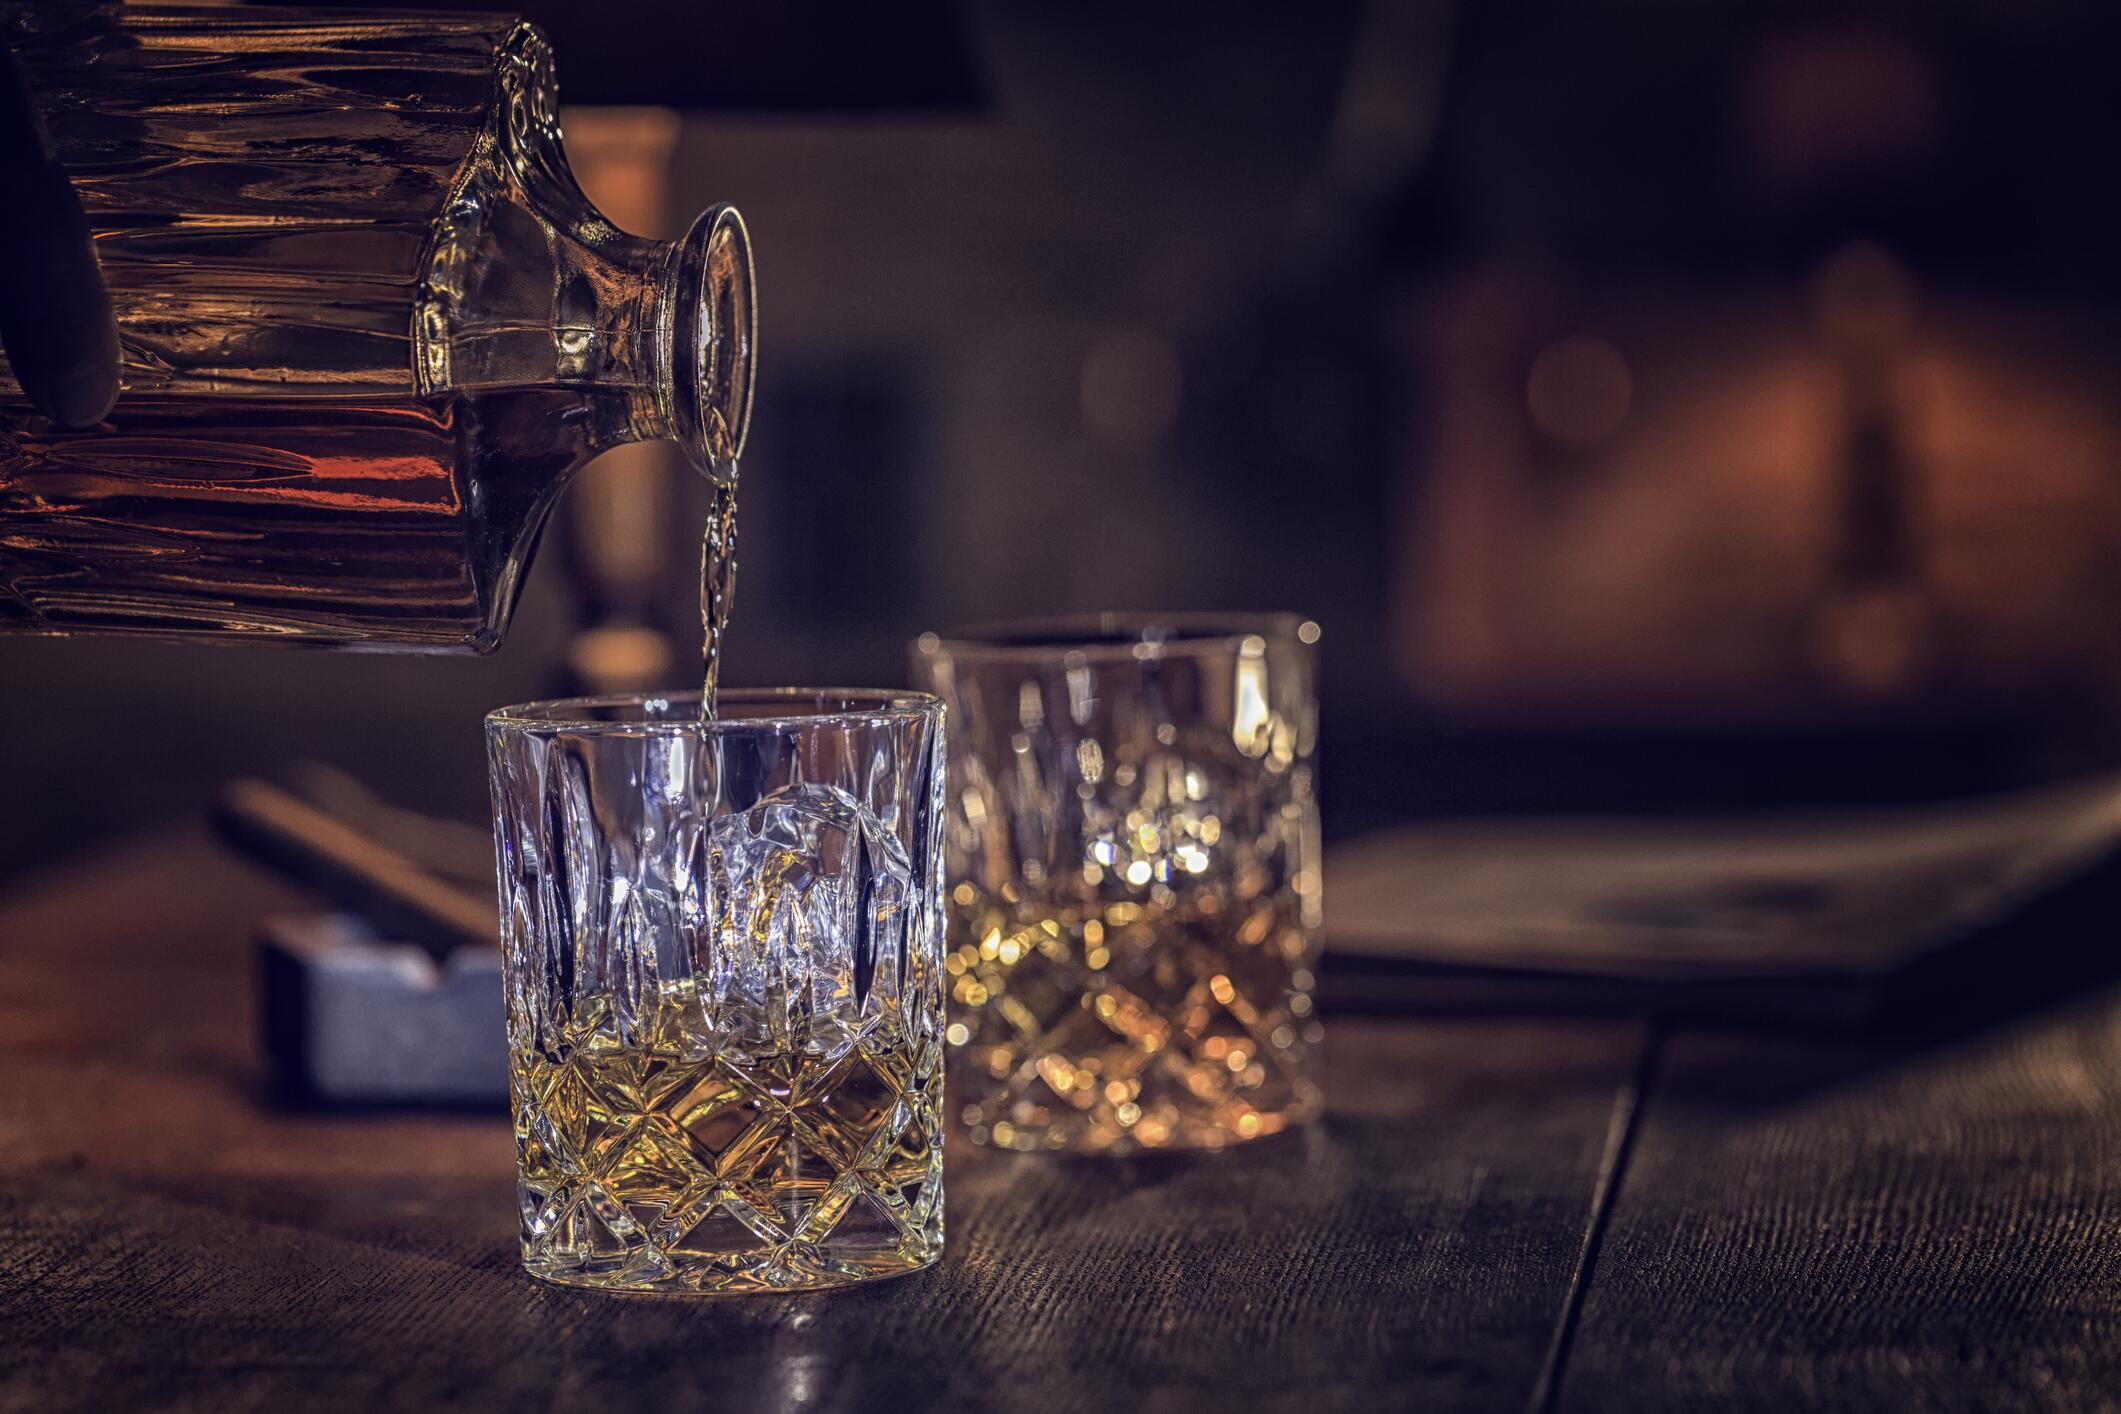 Bild zu Whiskey, Whiskey-Guide, Whiskey-Sorten, Whiskey-Cocktails, Whisky, Irland, Schottland, USA